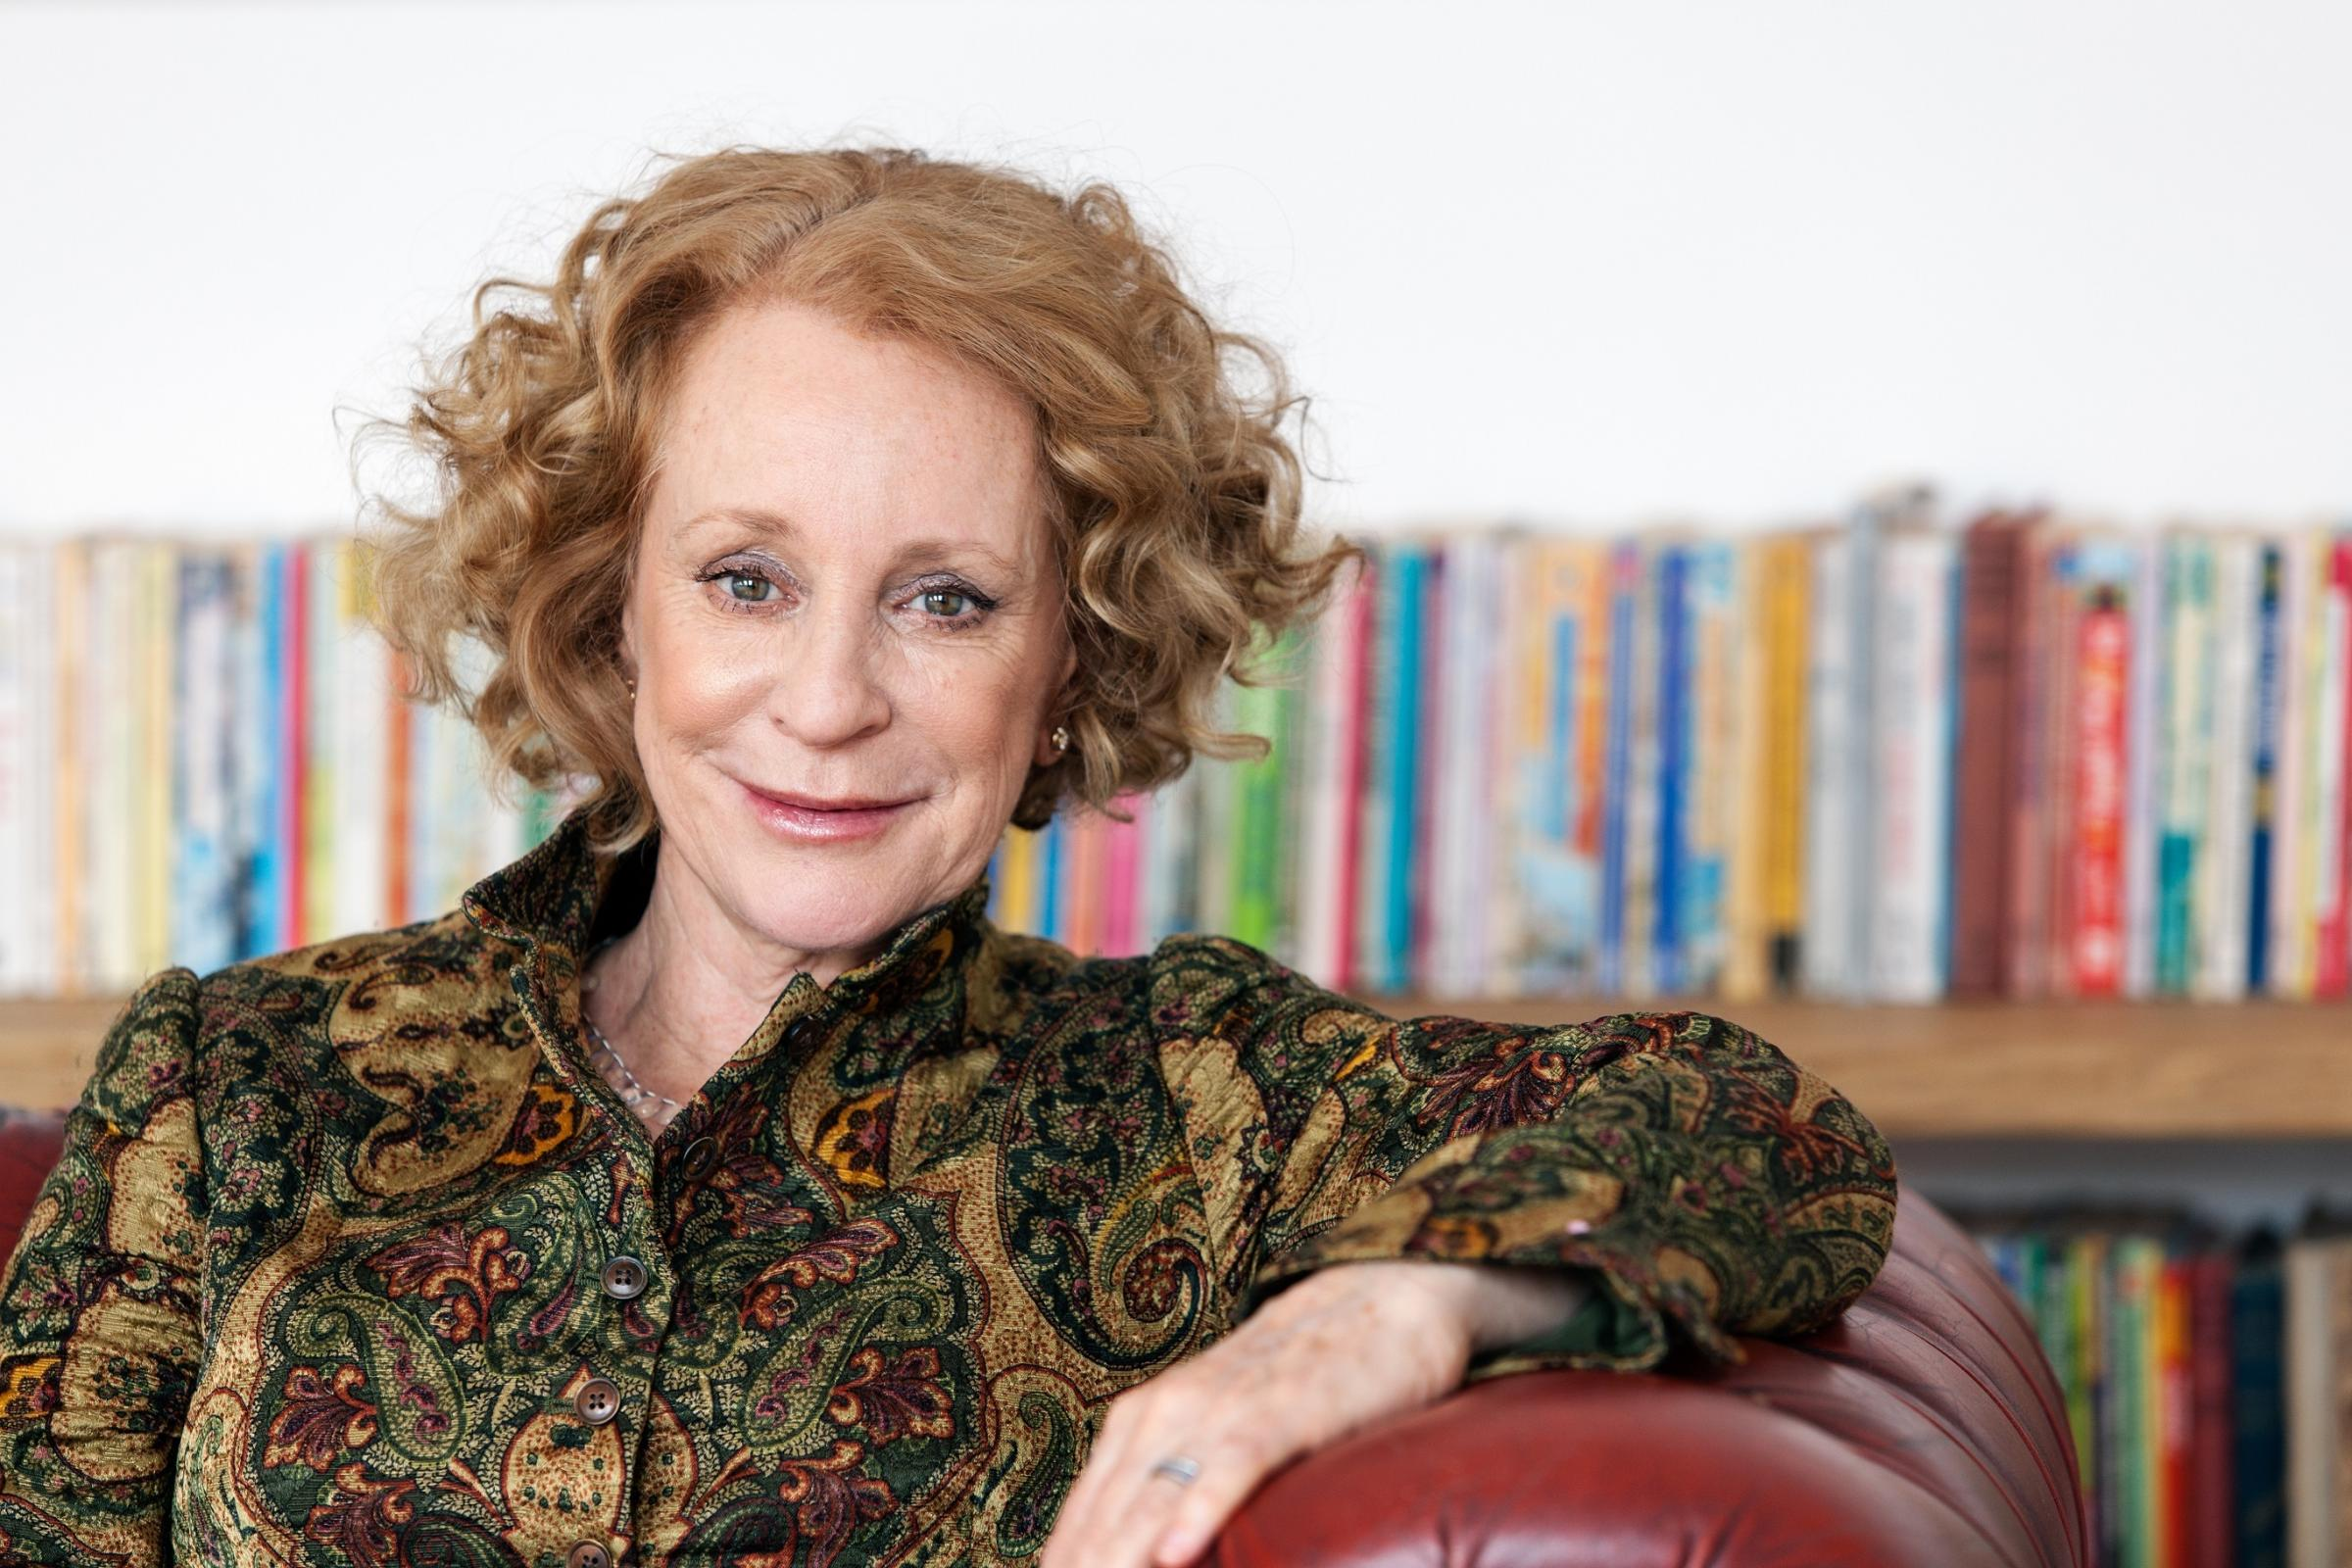 NOVELIST: Historical author Philippa Gregory will open Stokesley's new community library